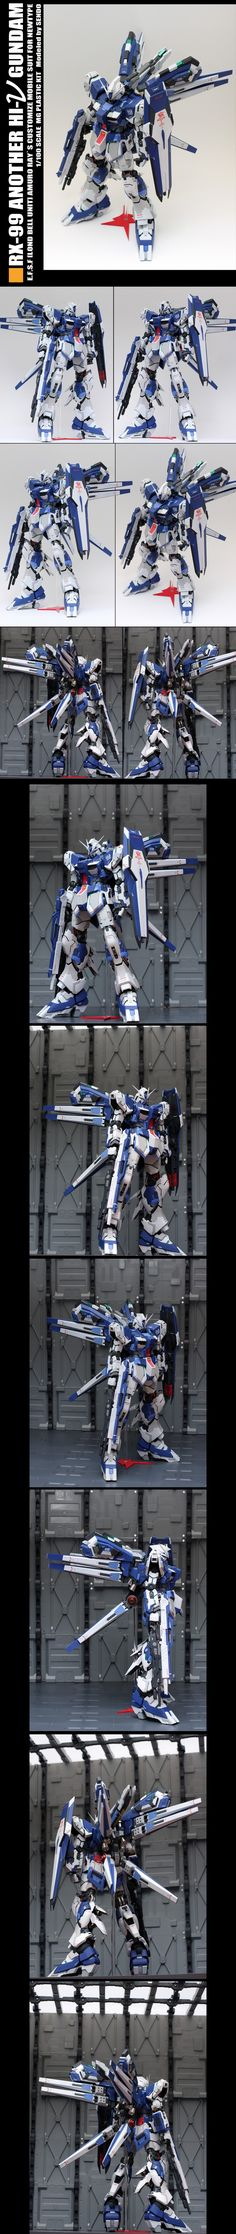 [MG 1/100] RX-99 ANOTHER Hi-Nu Gundam: Masterpiece, modeled by SENDO. Full Photoreview Wallpaper Size Images